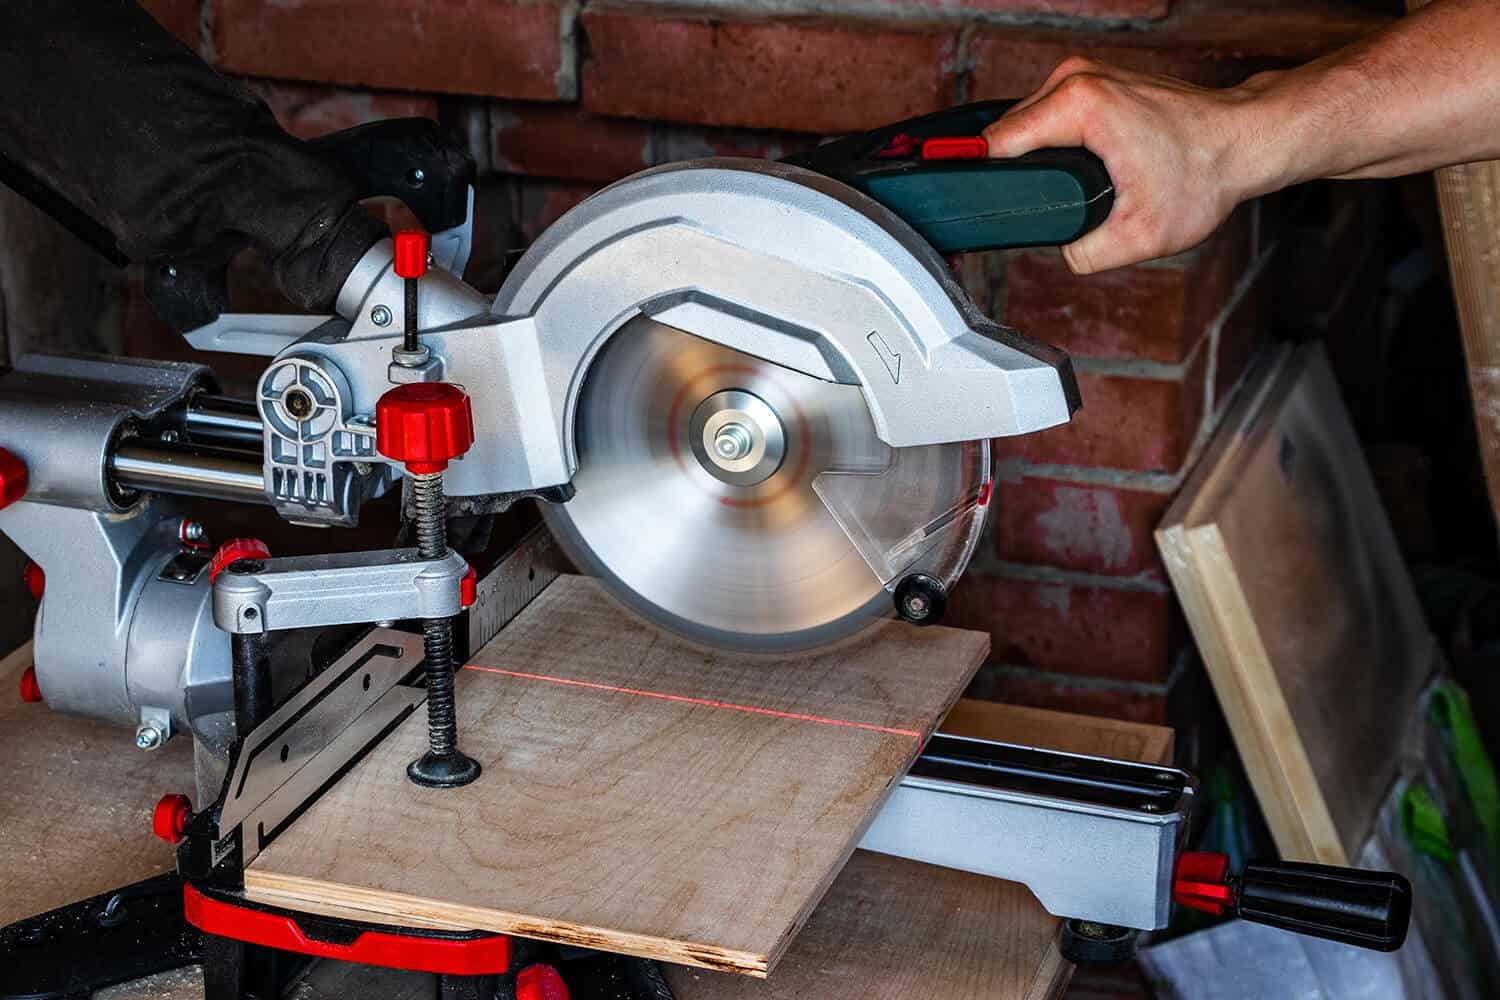 Miter Saw close up